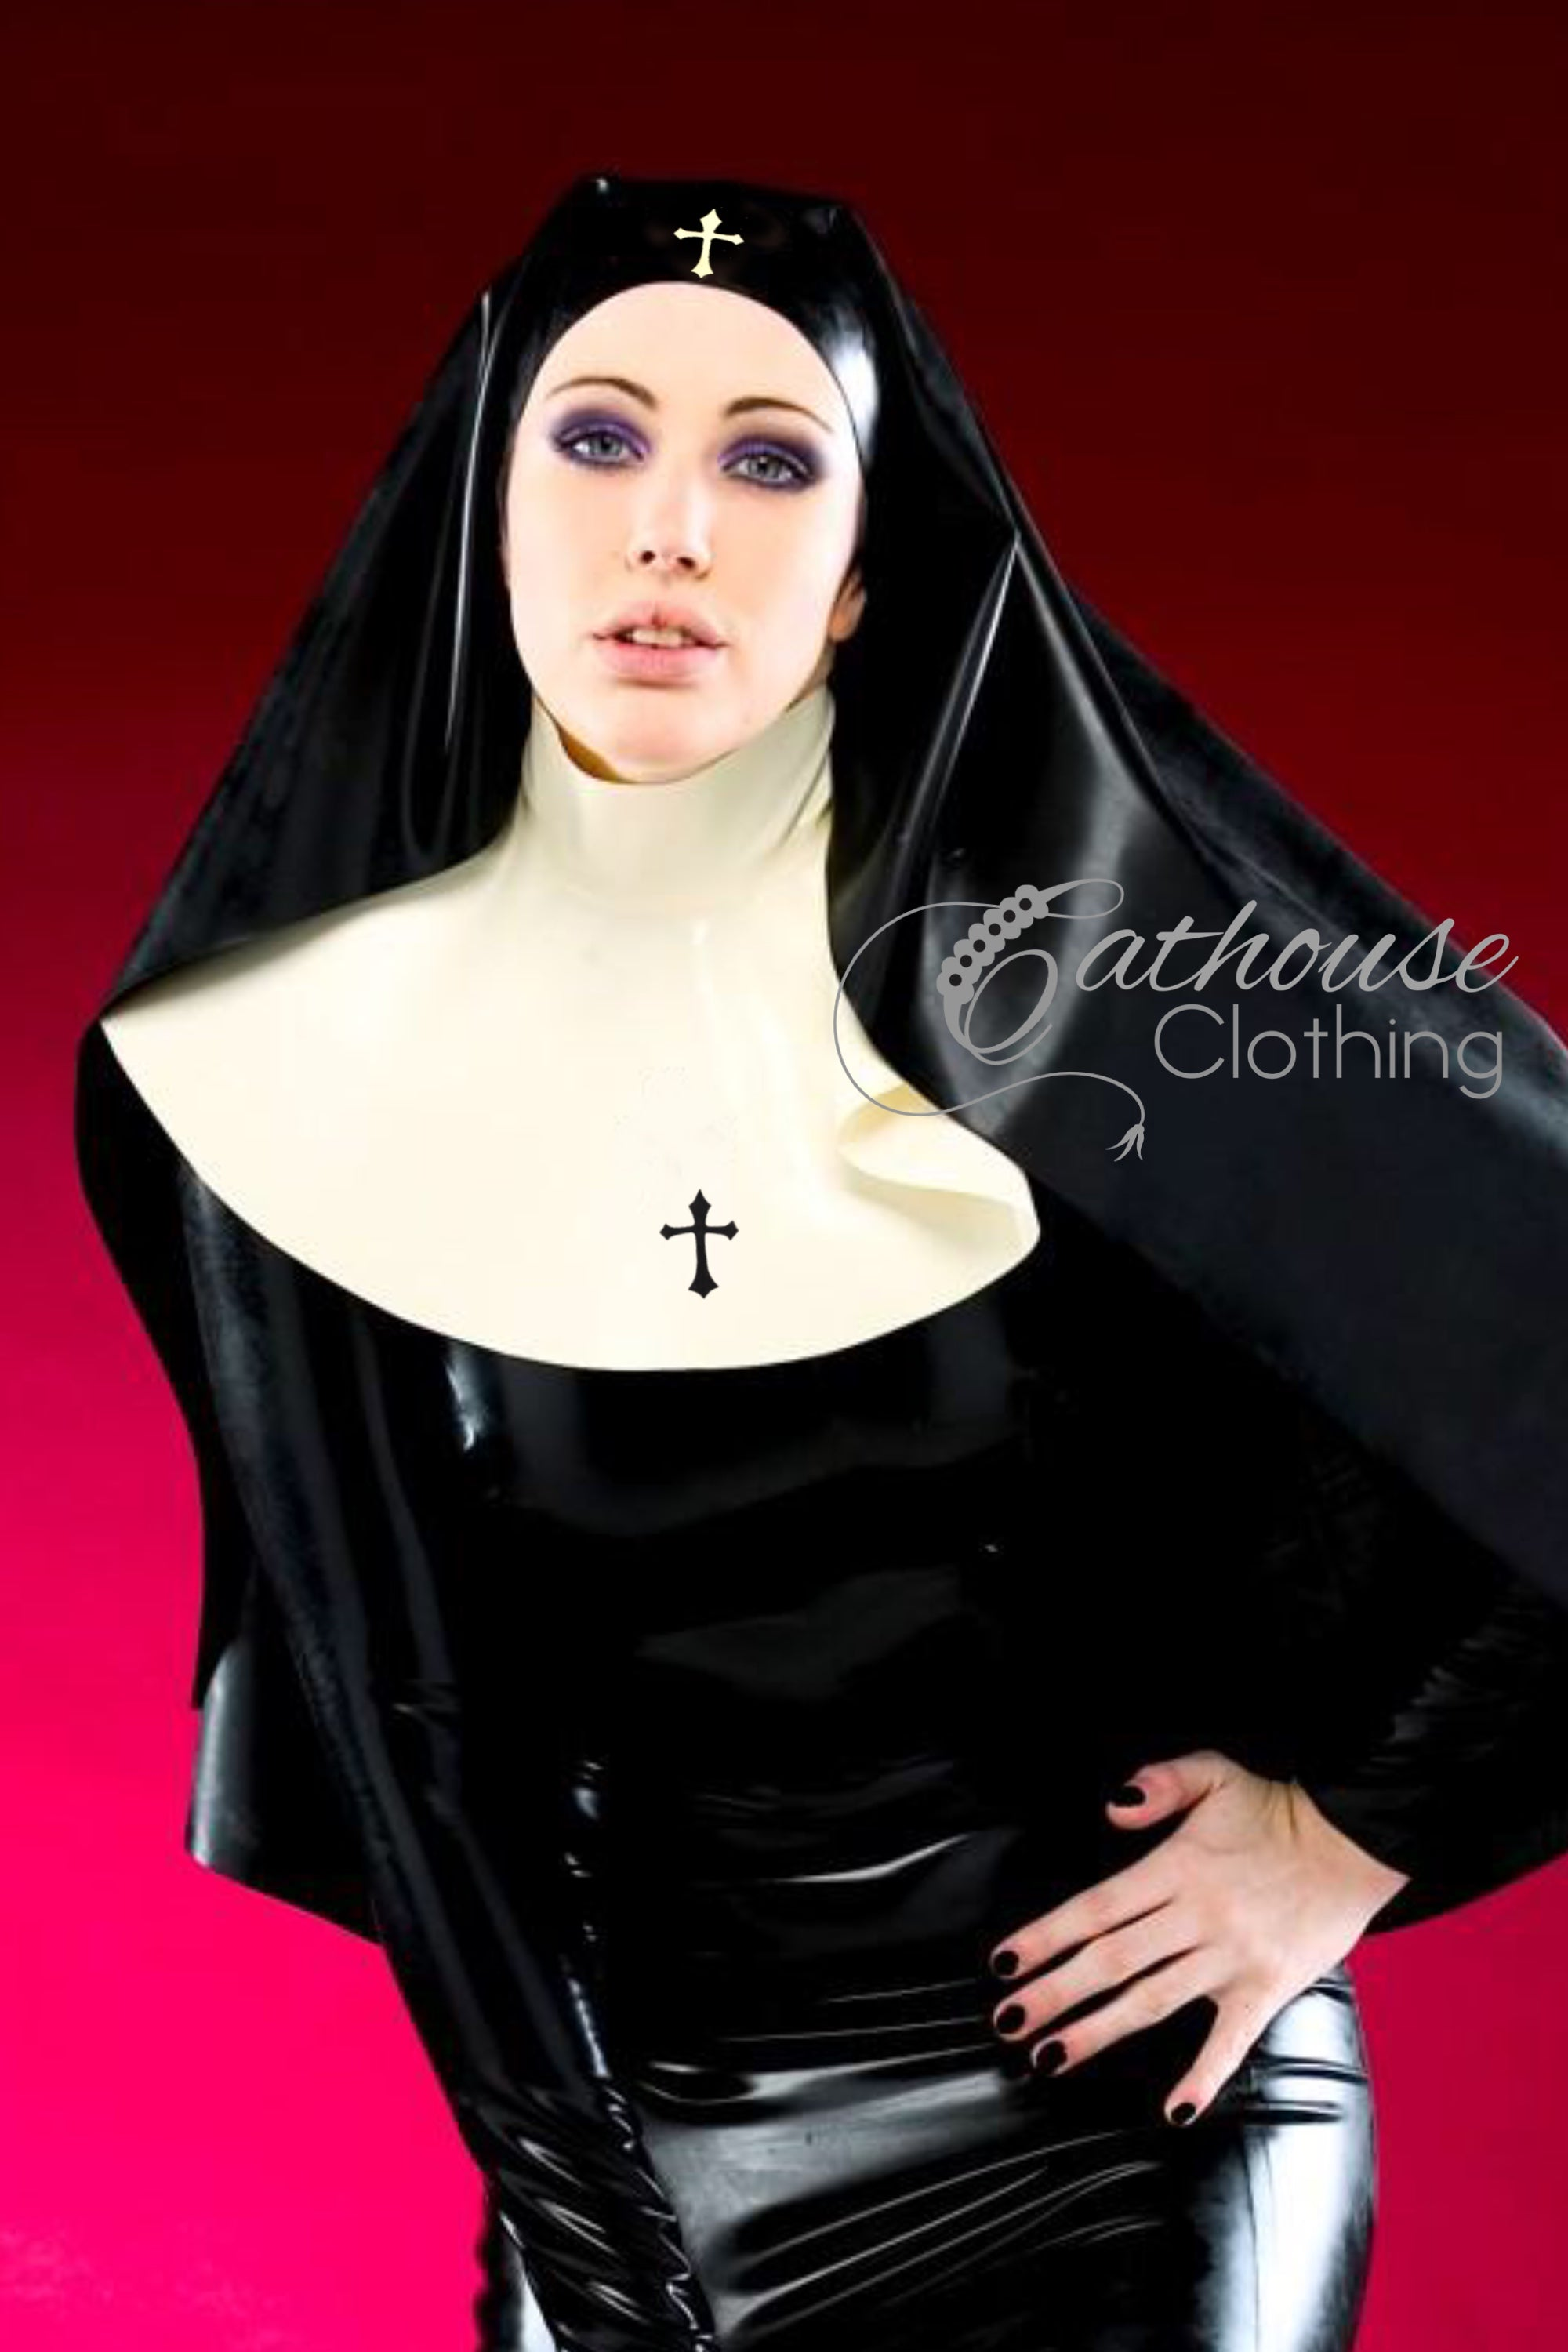 Latex nun outfit